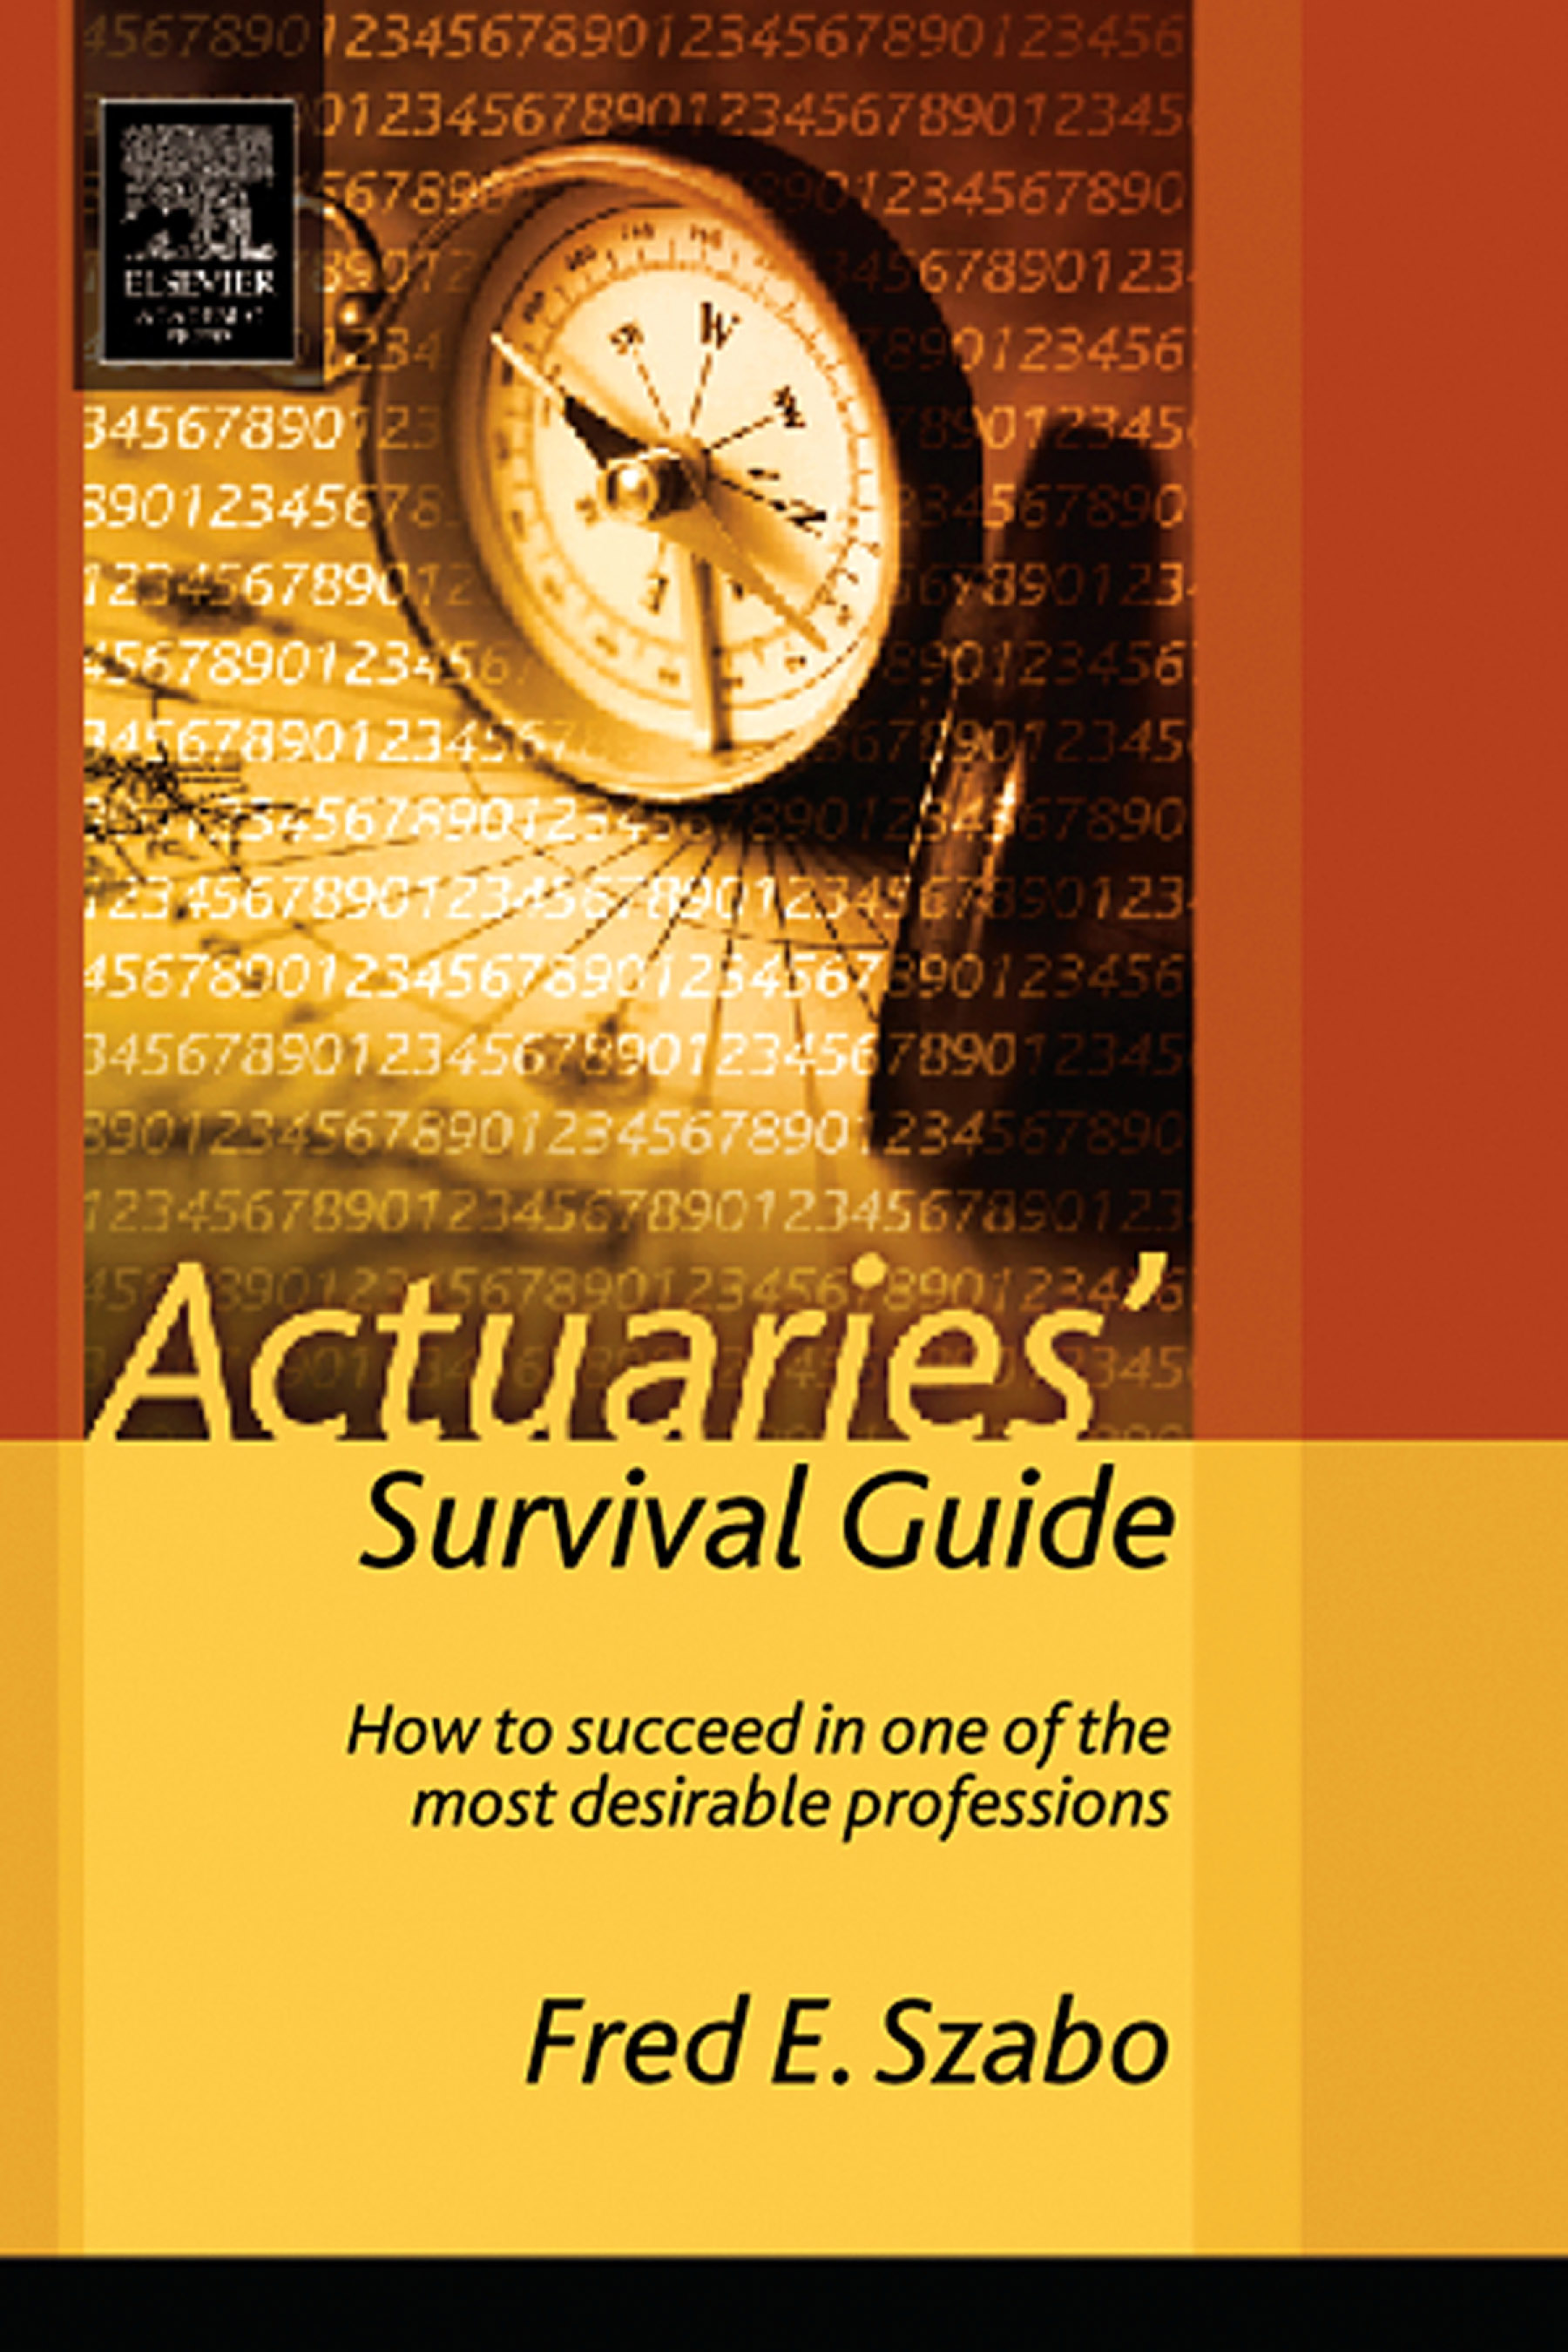 Download Ebook Actuaries' Survival Guide by Fred Szabo Pdf